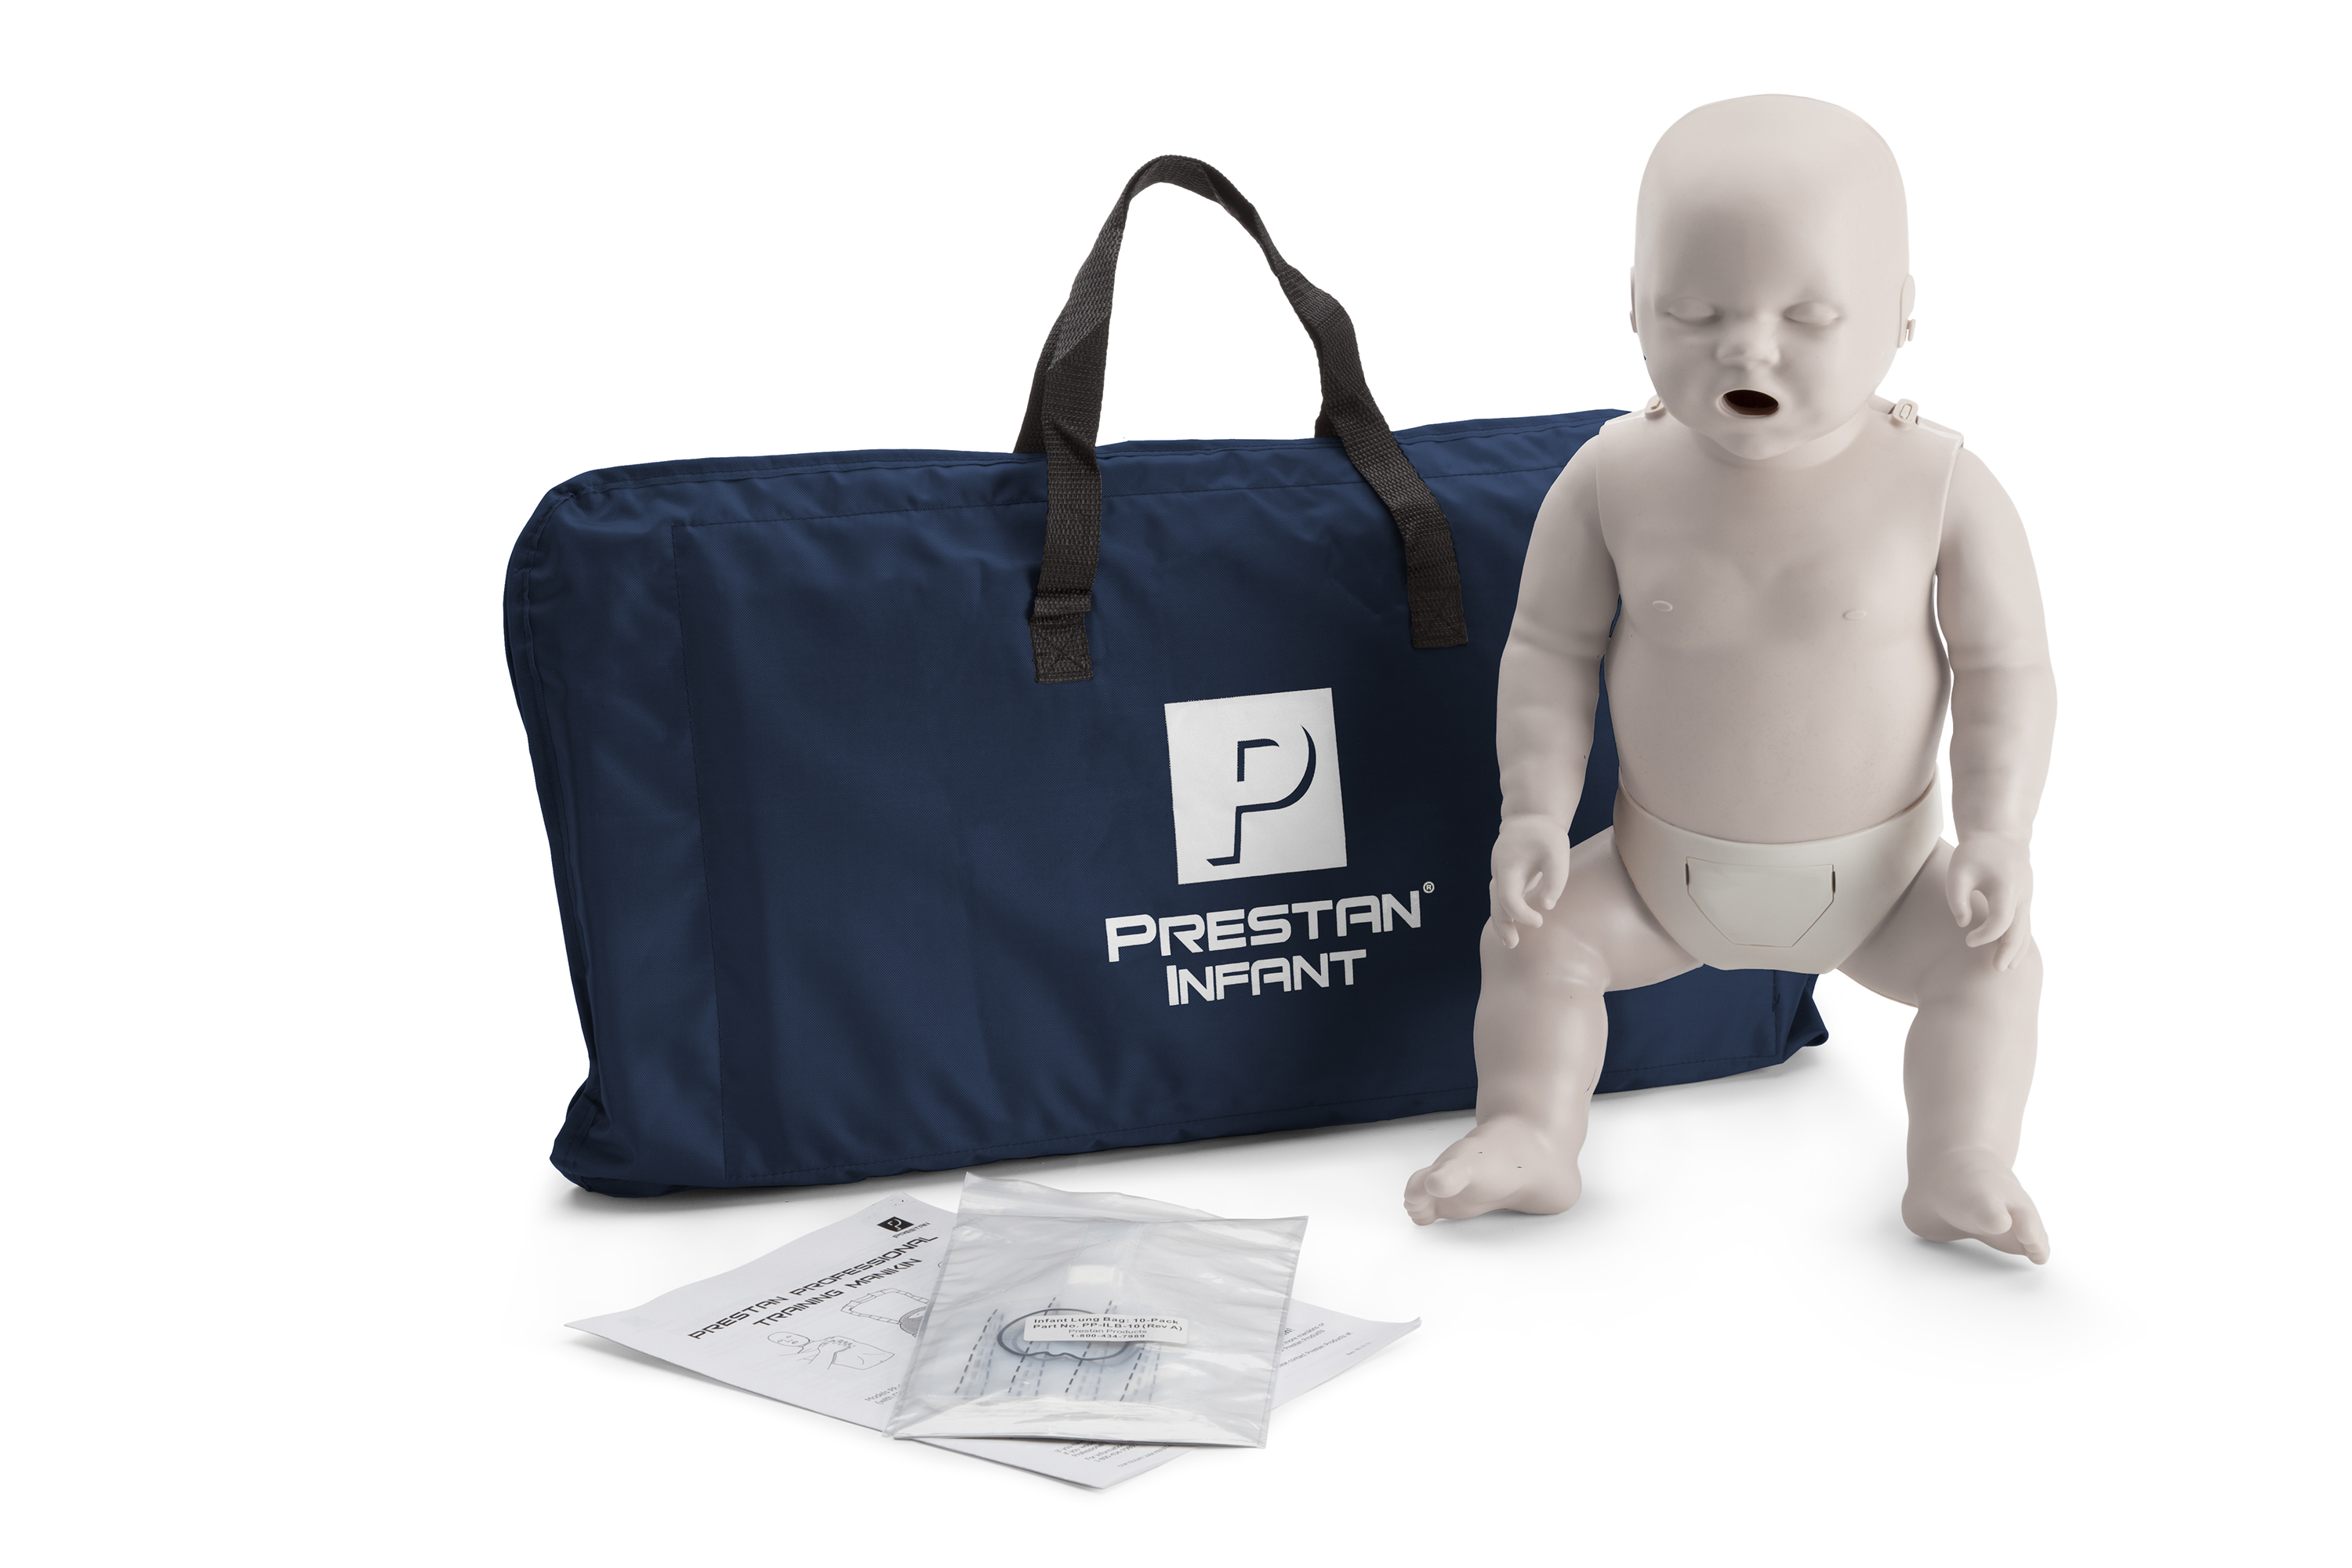 PP-IM-100M Prestan Infant Manikin with monitor